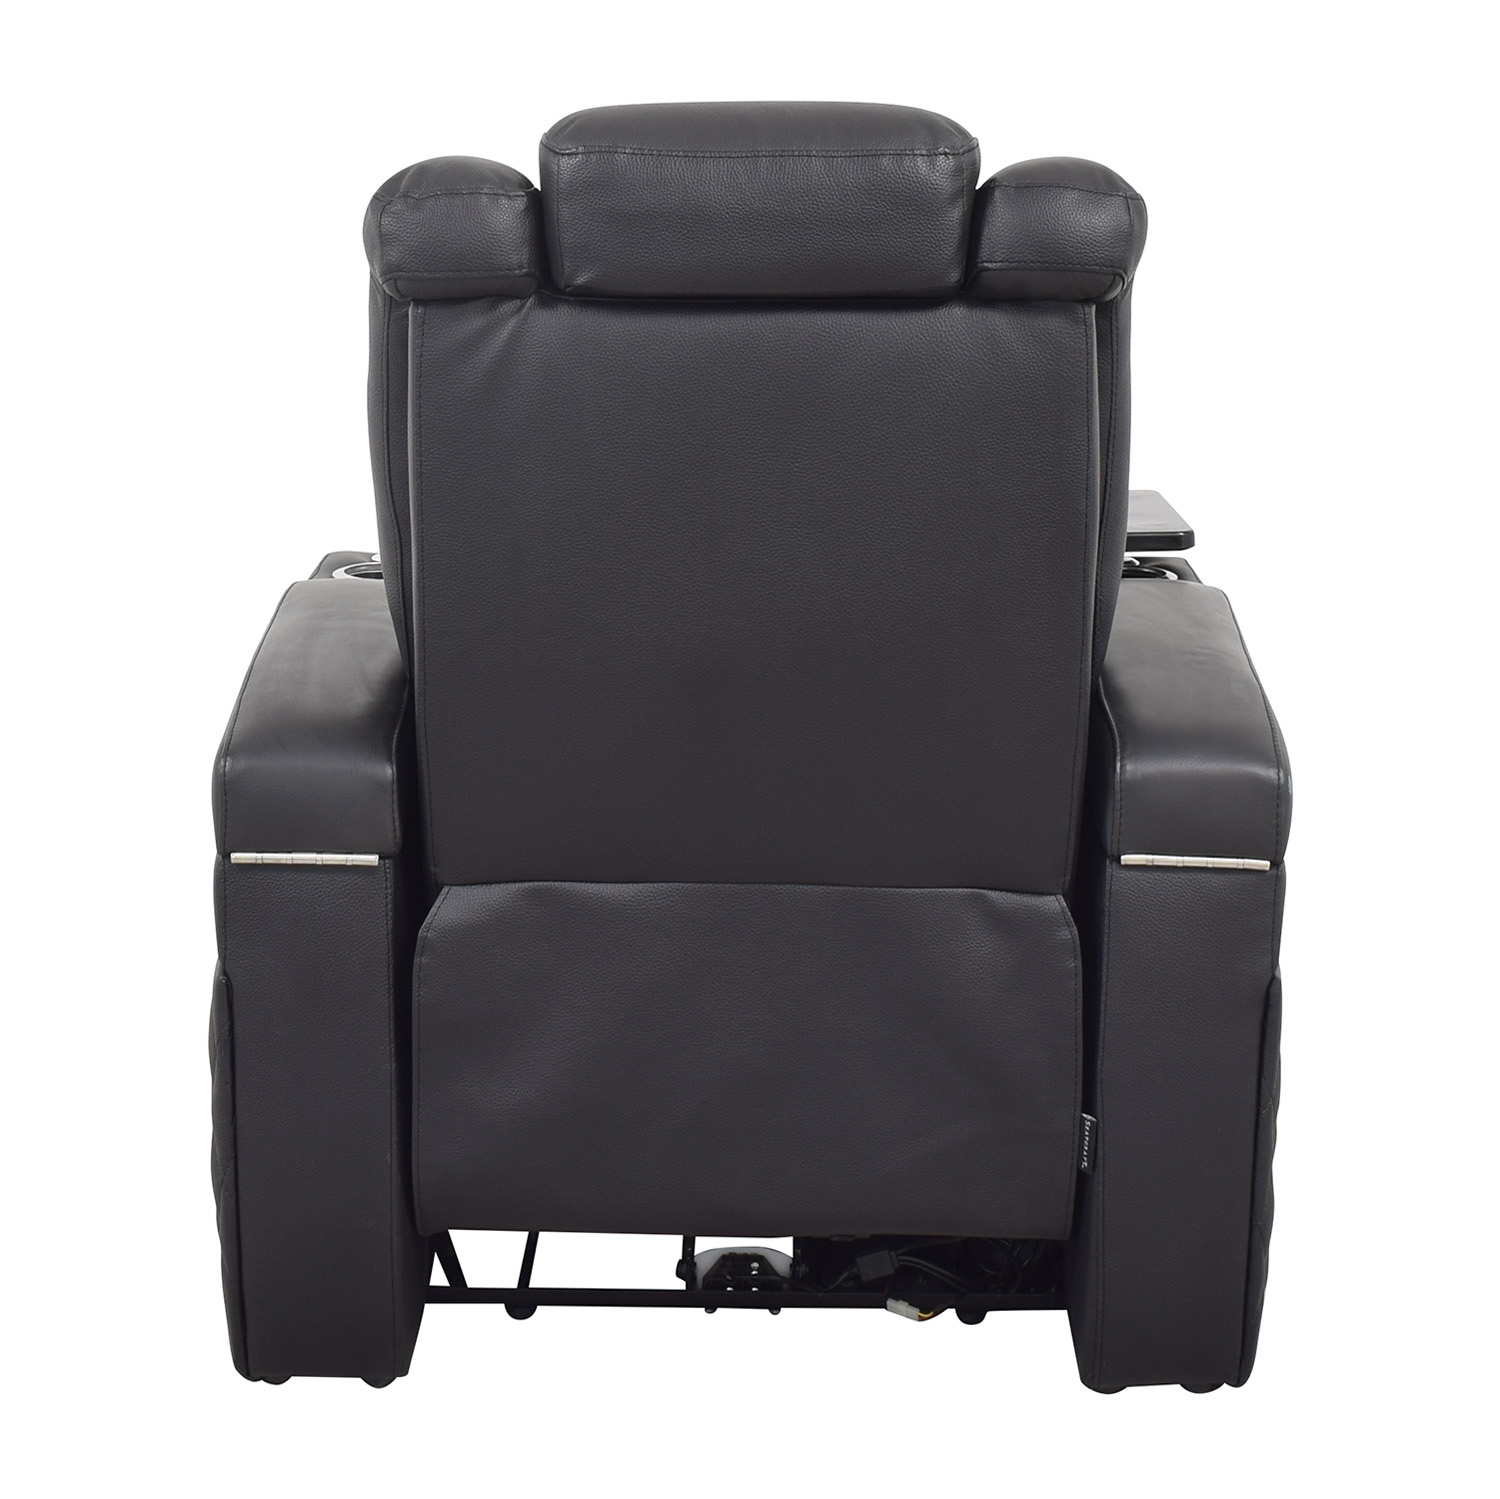 Seatcraft Seatcraft Diamante Home Theater Seating Leather Power Recliner discount